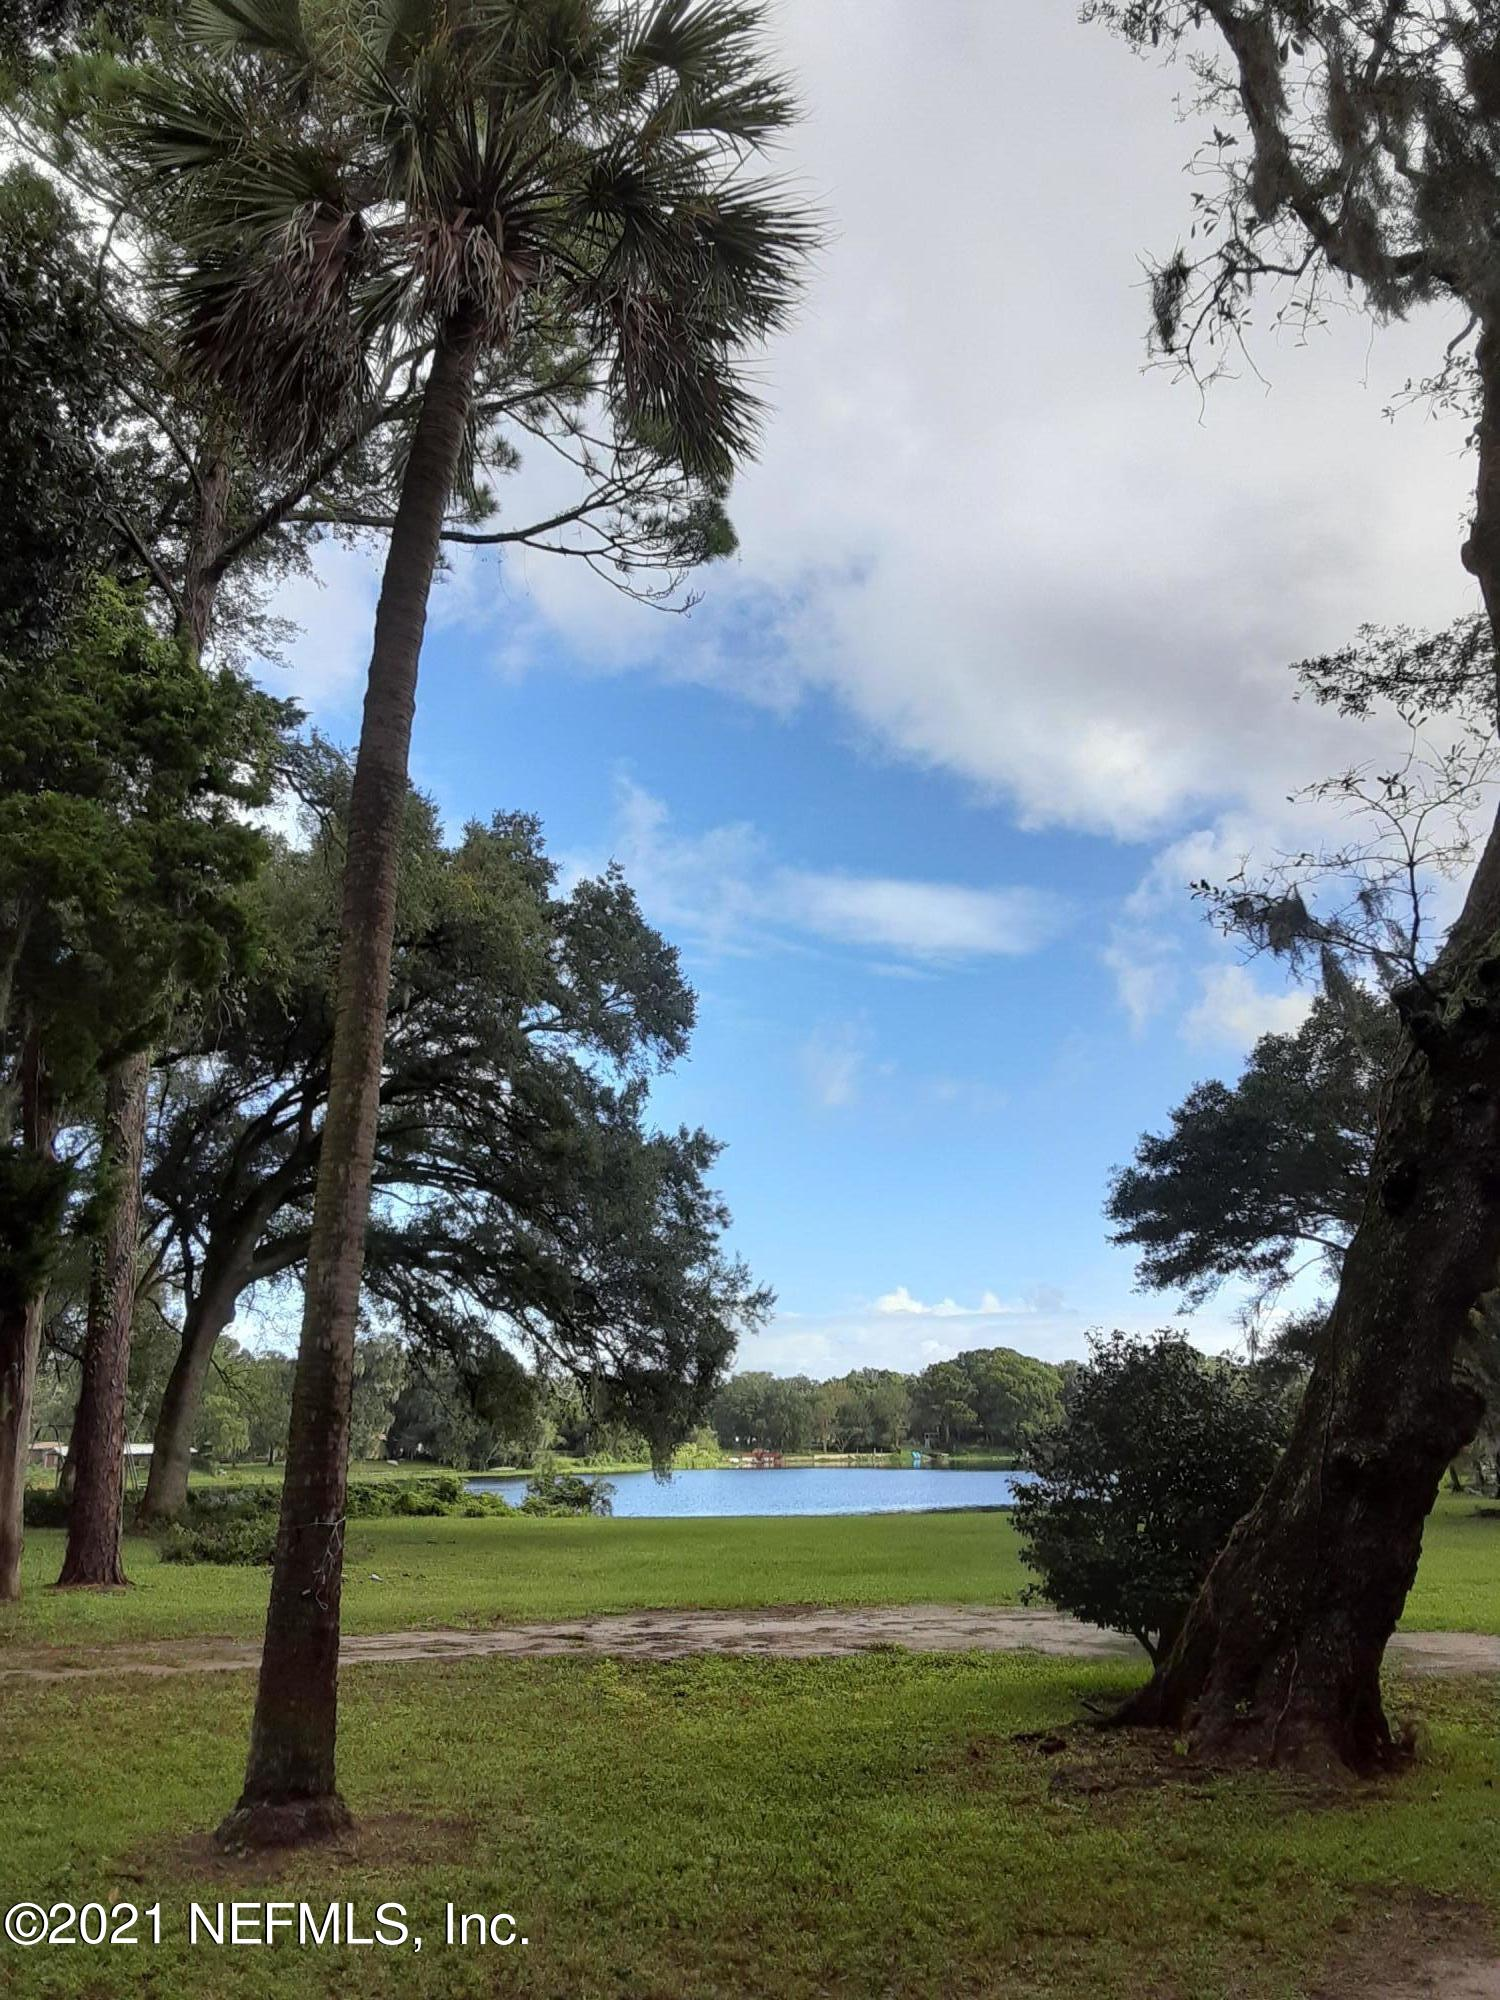 Great Investment Opportunity to own .This Property consist of 5 single family houses that are currently leased. Nearly 3 acres . Peaceful lake view. Please do not disturb tenants